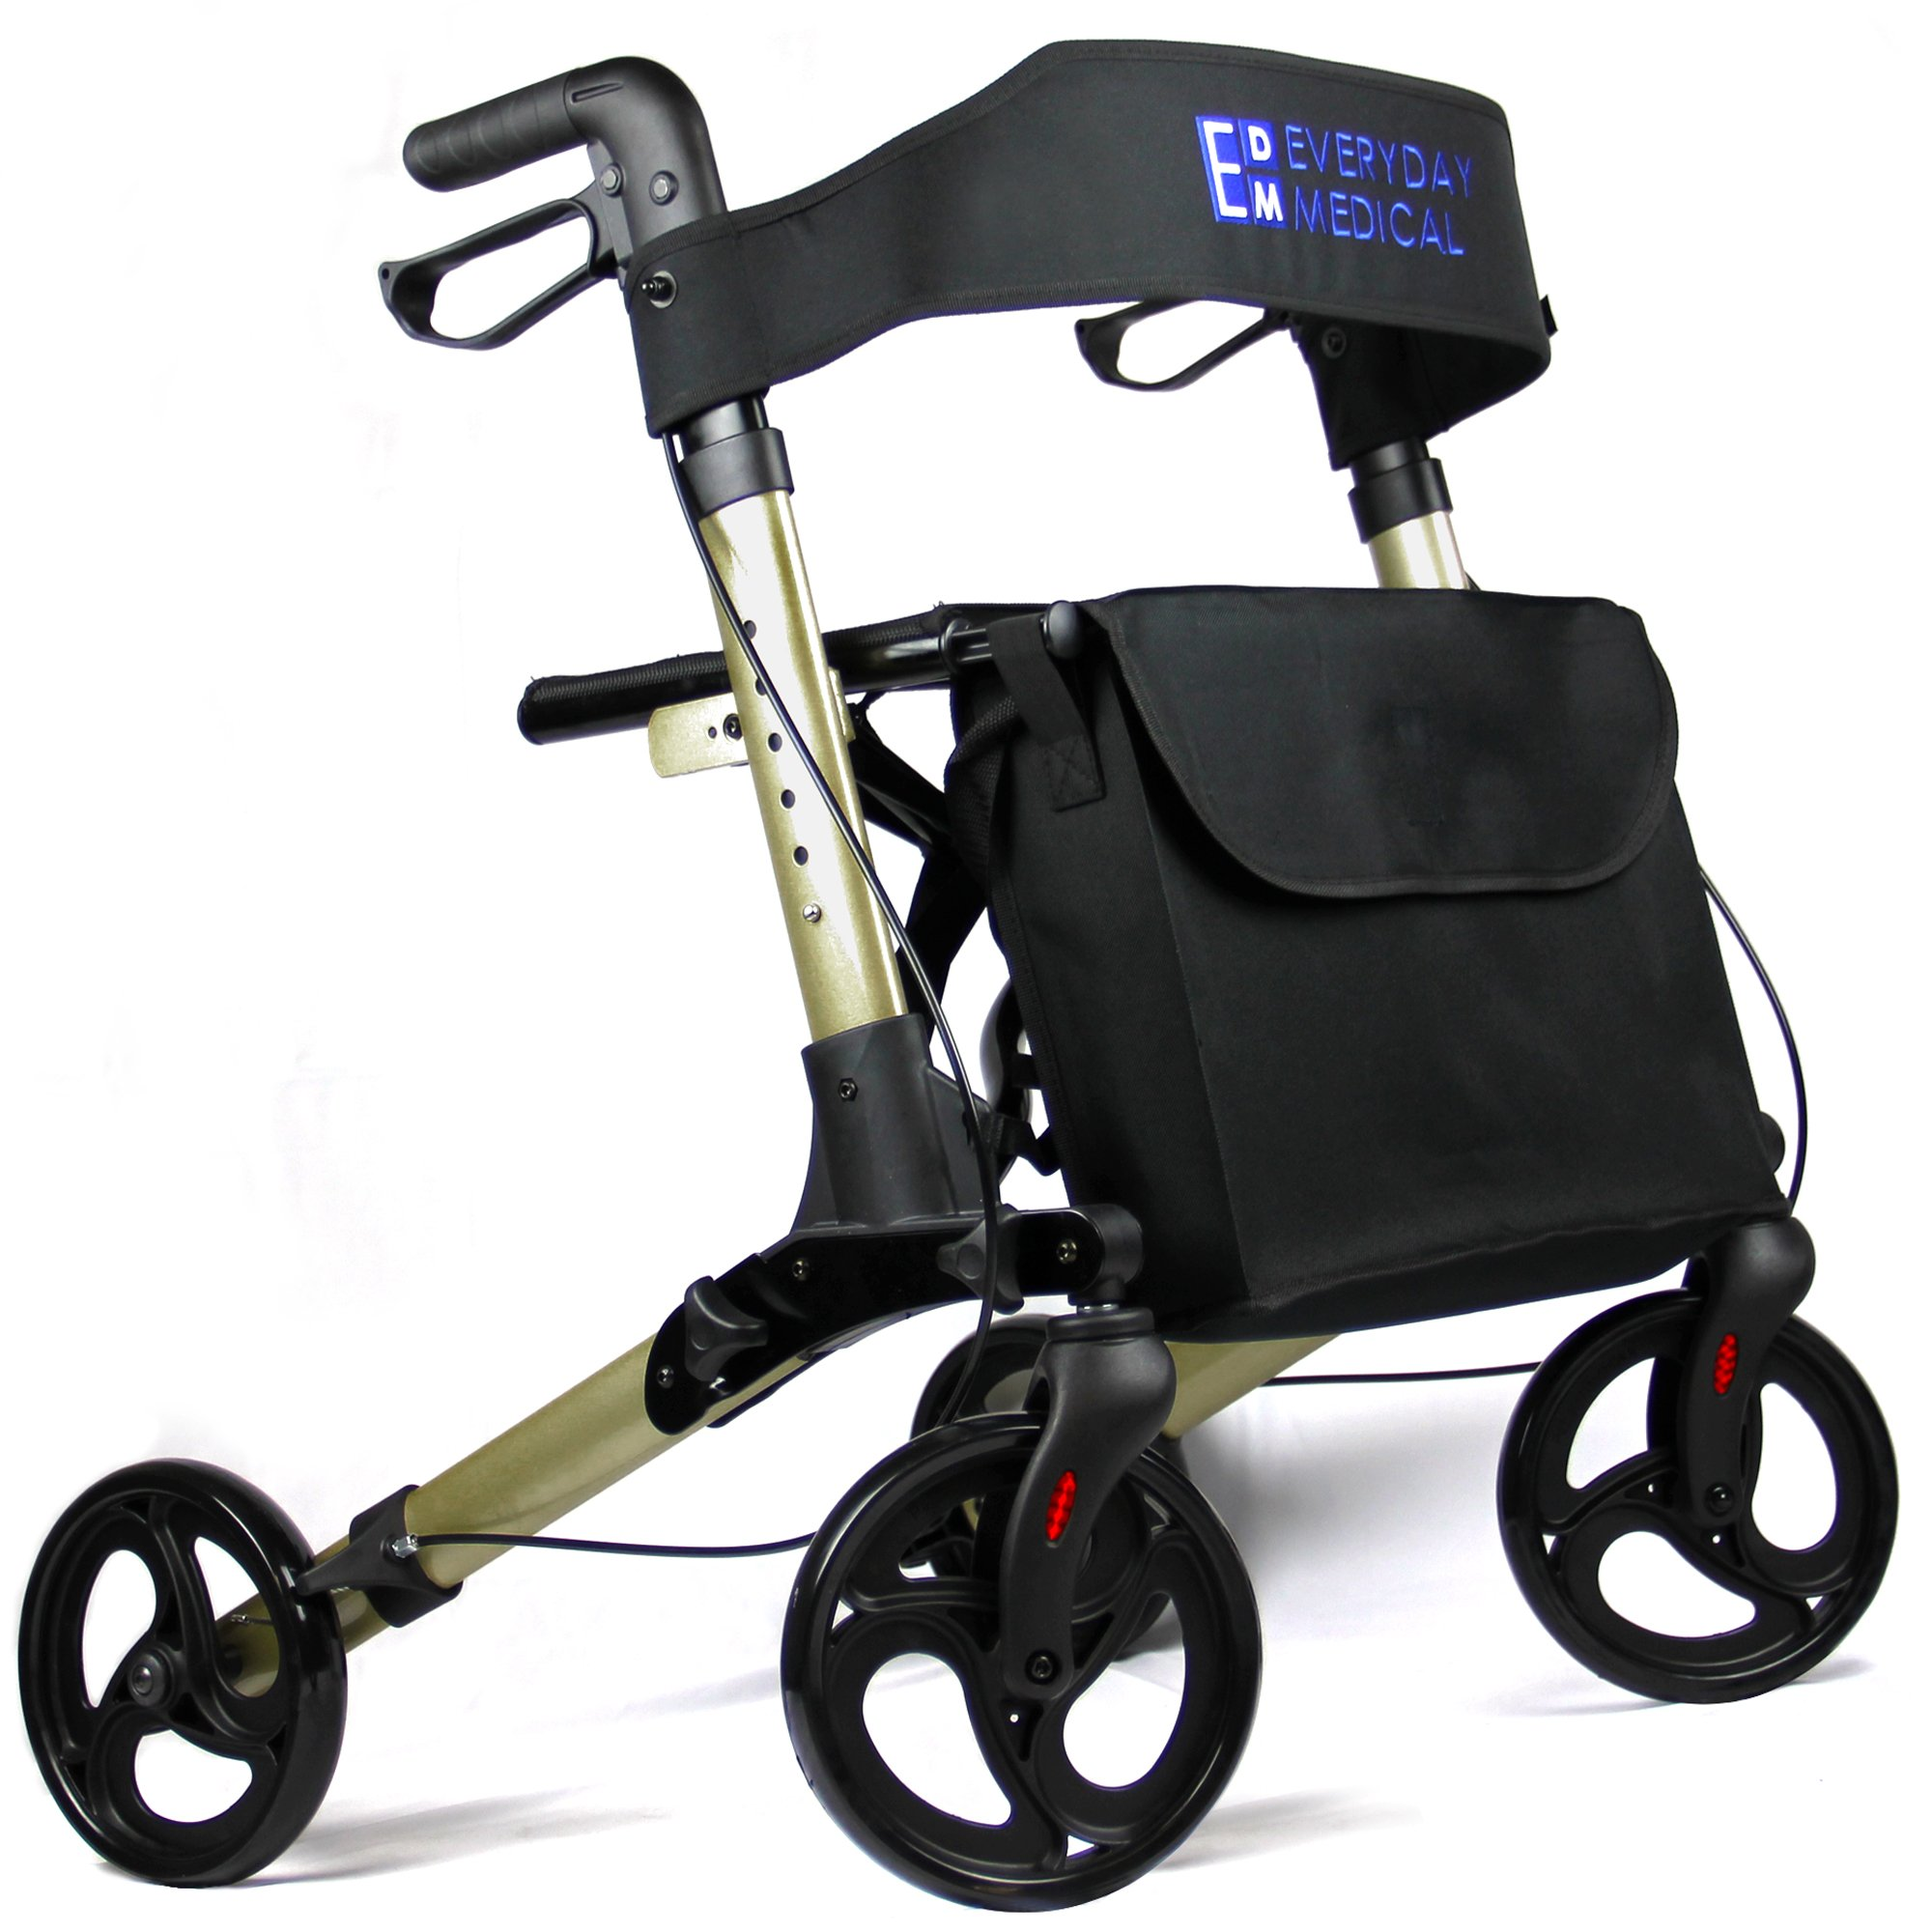 Everyday Medical Heavy Duty Rollator Walker With Seat and Basket, 4-Wheel Rollator, Folding Mobility Walker For the Elderly, Disabled and Injured